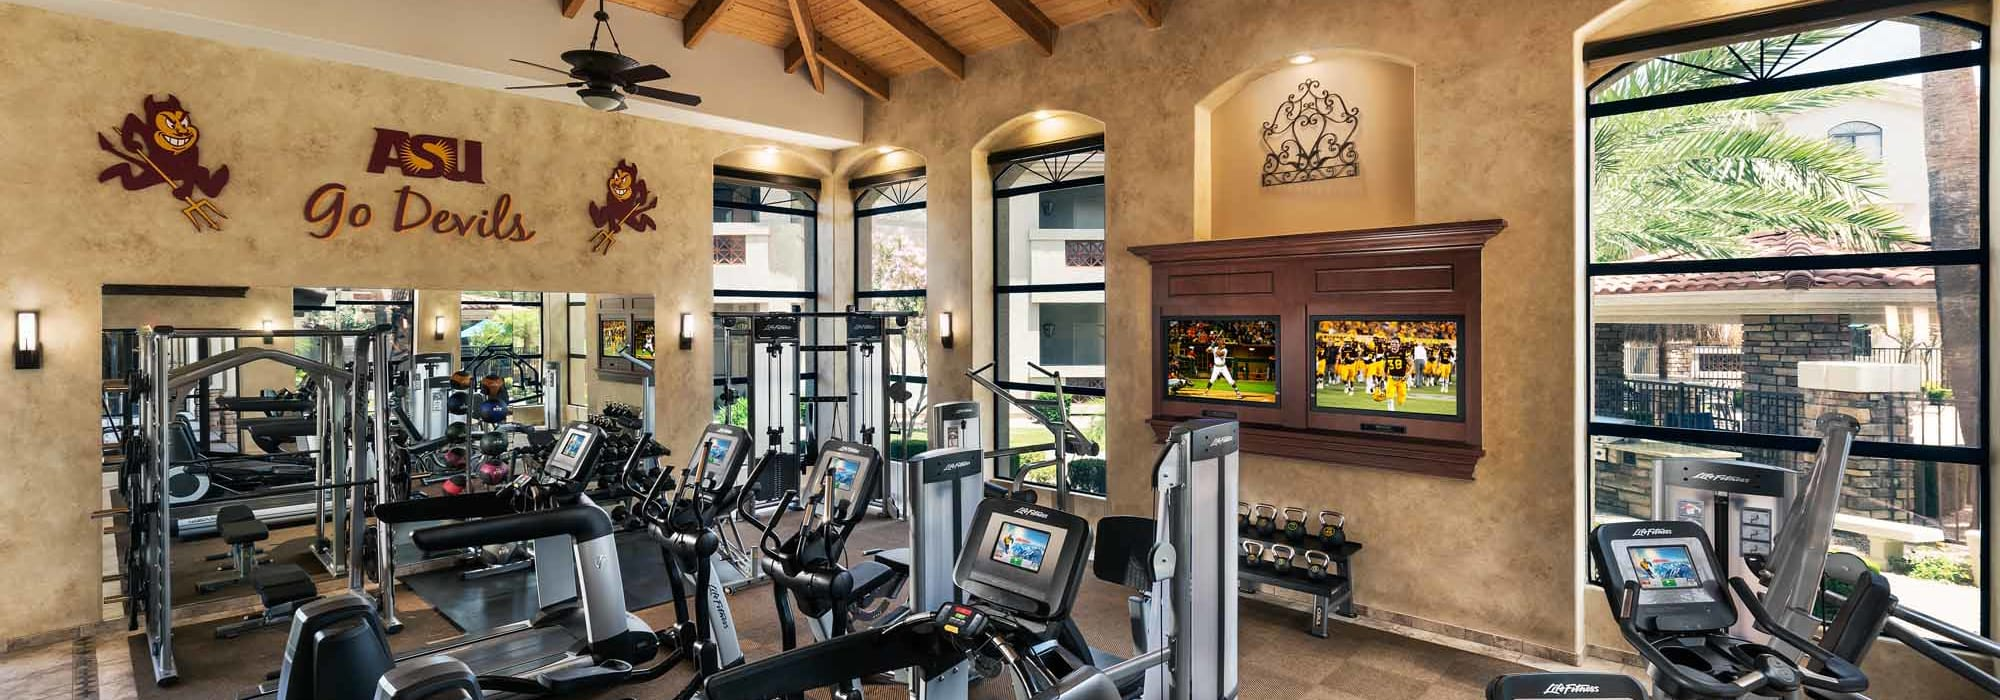 State of the art fitness center at San Marbeya in Tempe, Arizona